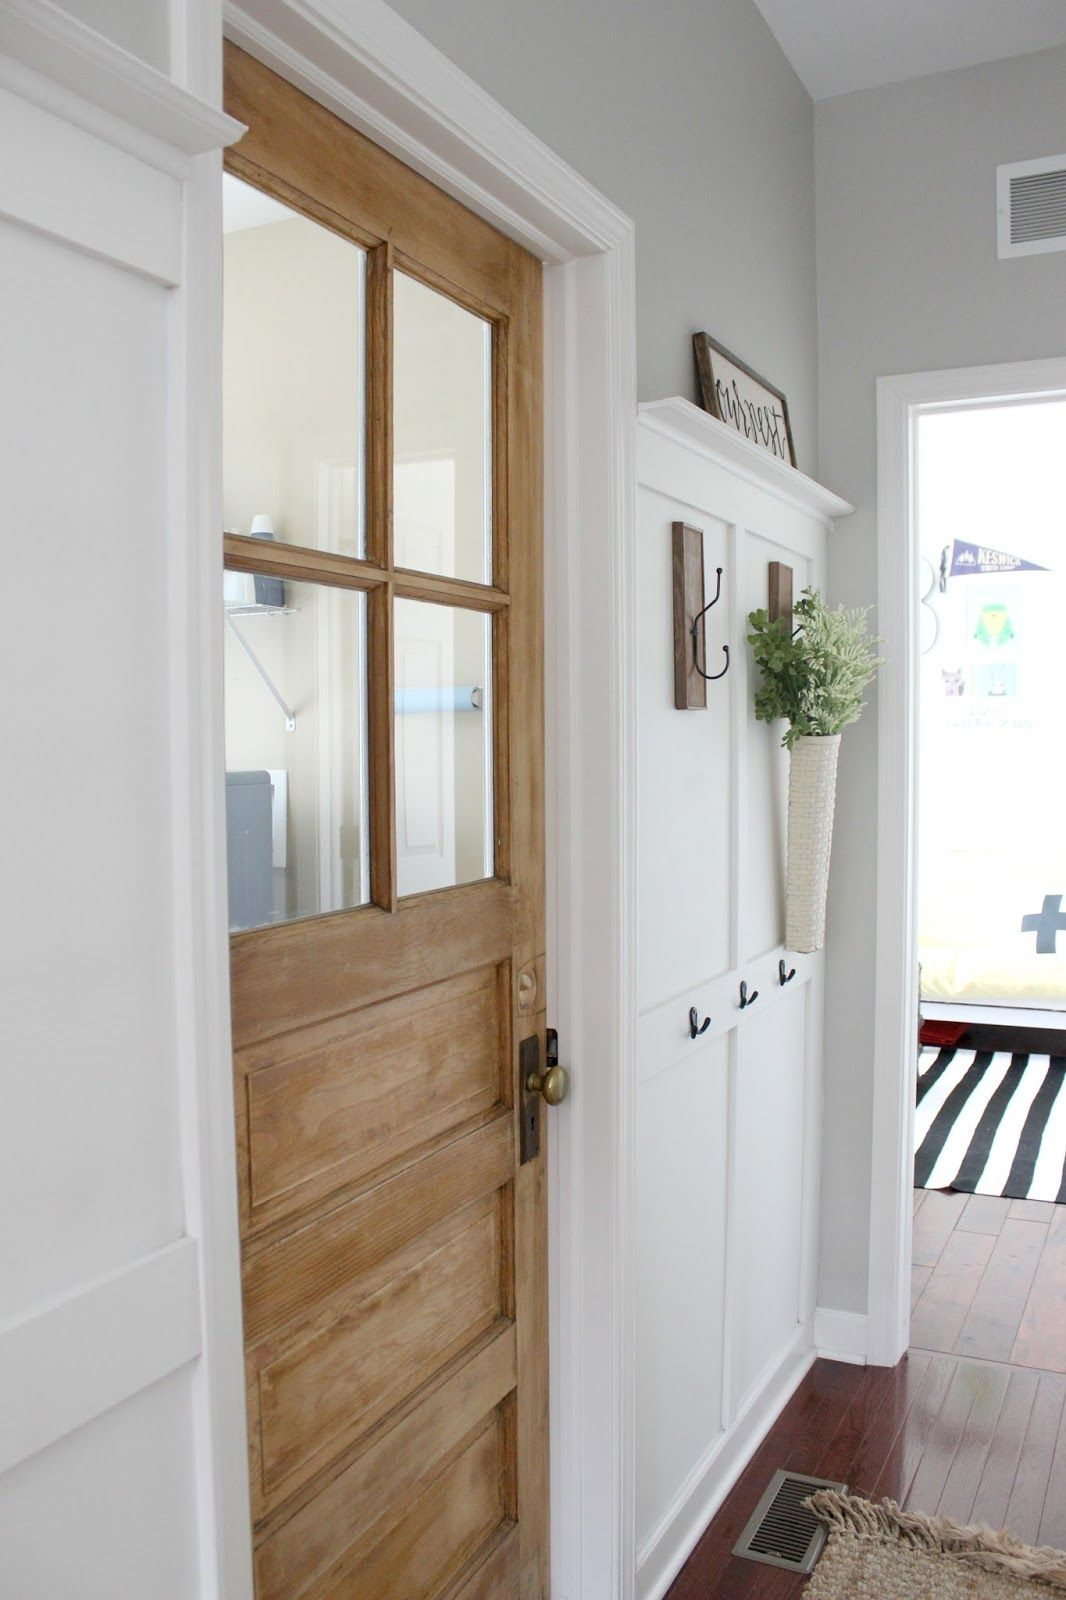 Old Vintage Door For The Laundry Room Wood Doors Interior Doors Interior Room Doors